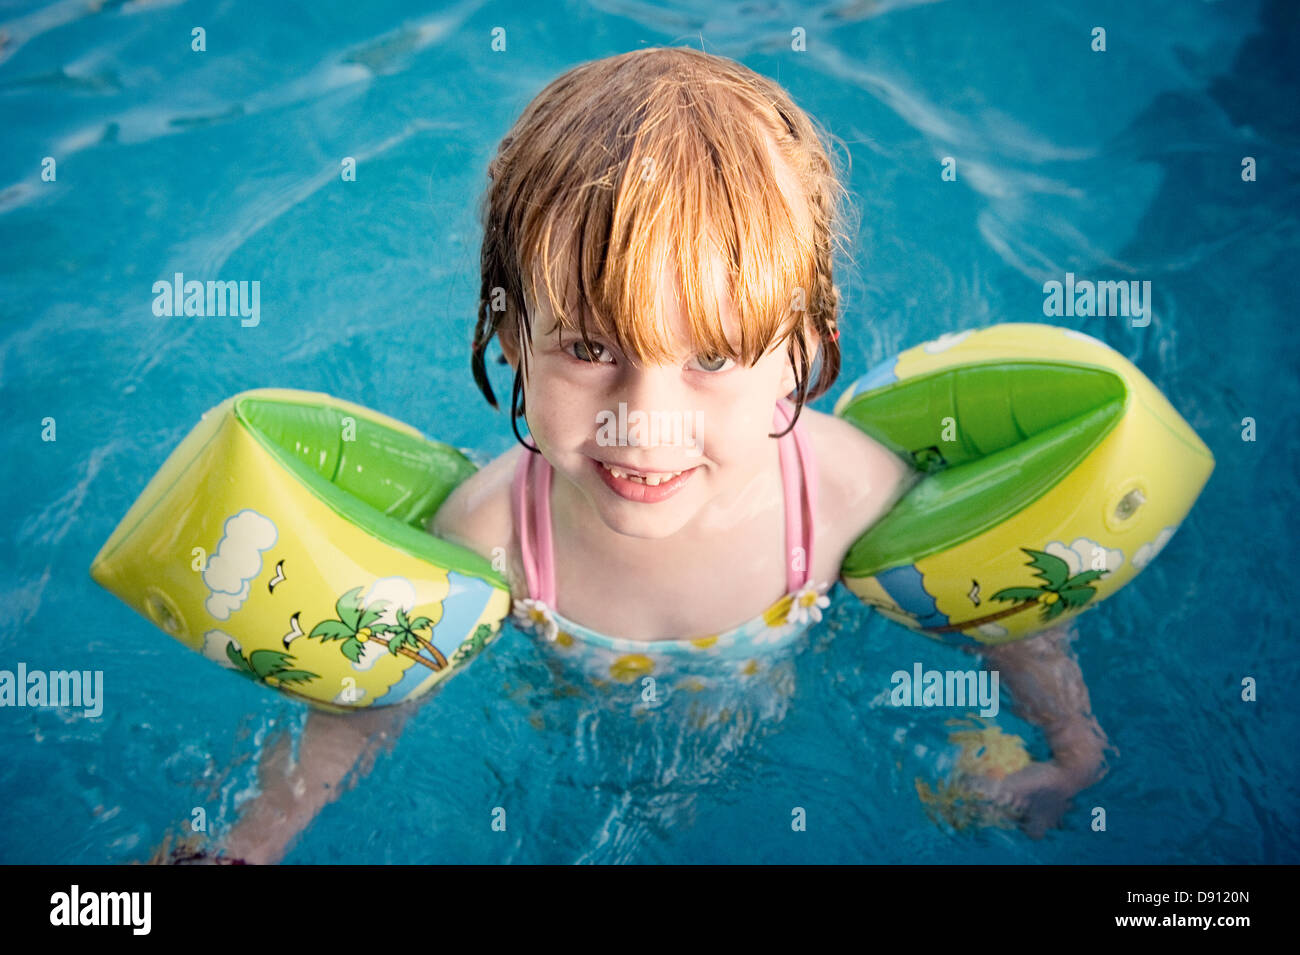 Portrait of girl in swimming pool - Stock Image